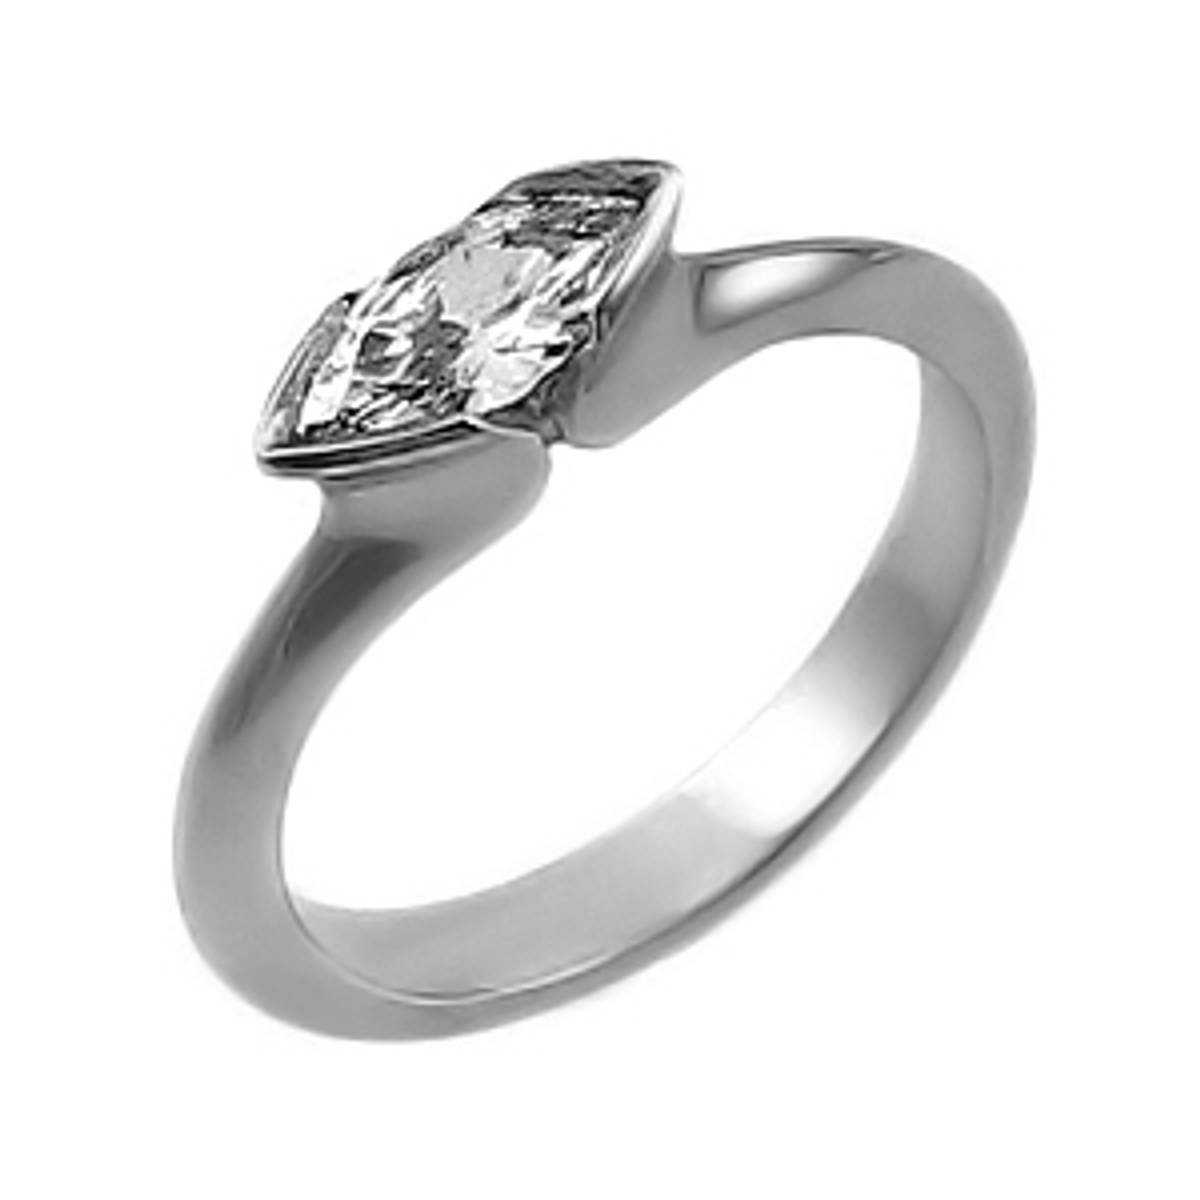 DR69245Single stone marquise diamond solitaire ringPictured item: 0.32ct marquise diamond set in platinumAvailable in: 18k gold or platinumStones size: different sizes of diamonds available on requestimage DR69291(1)